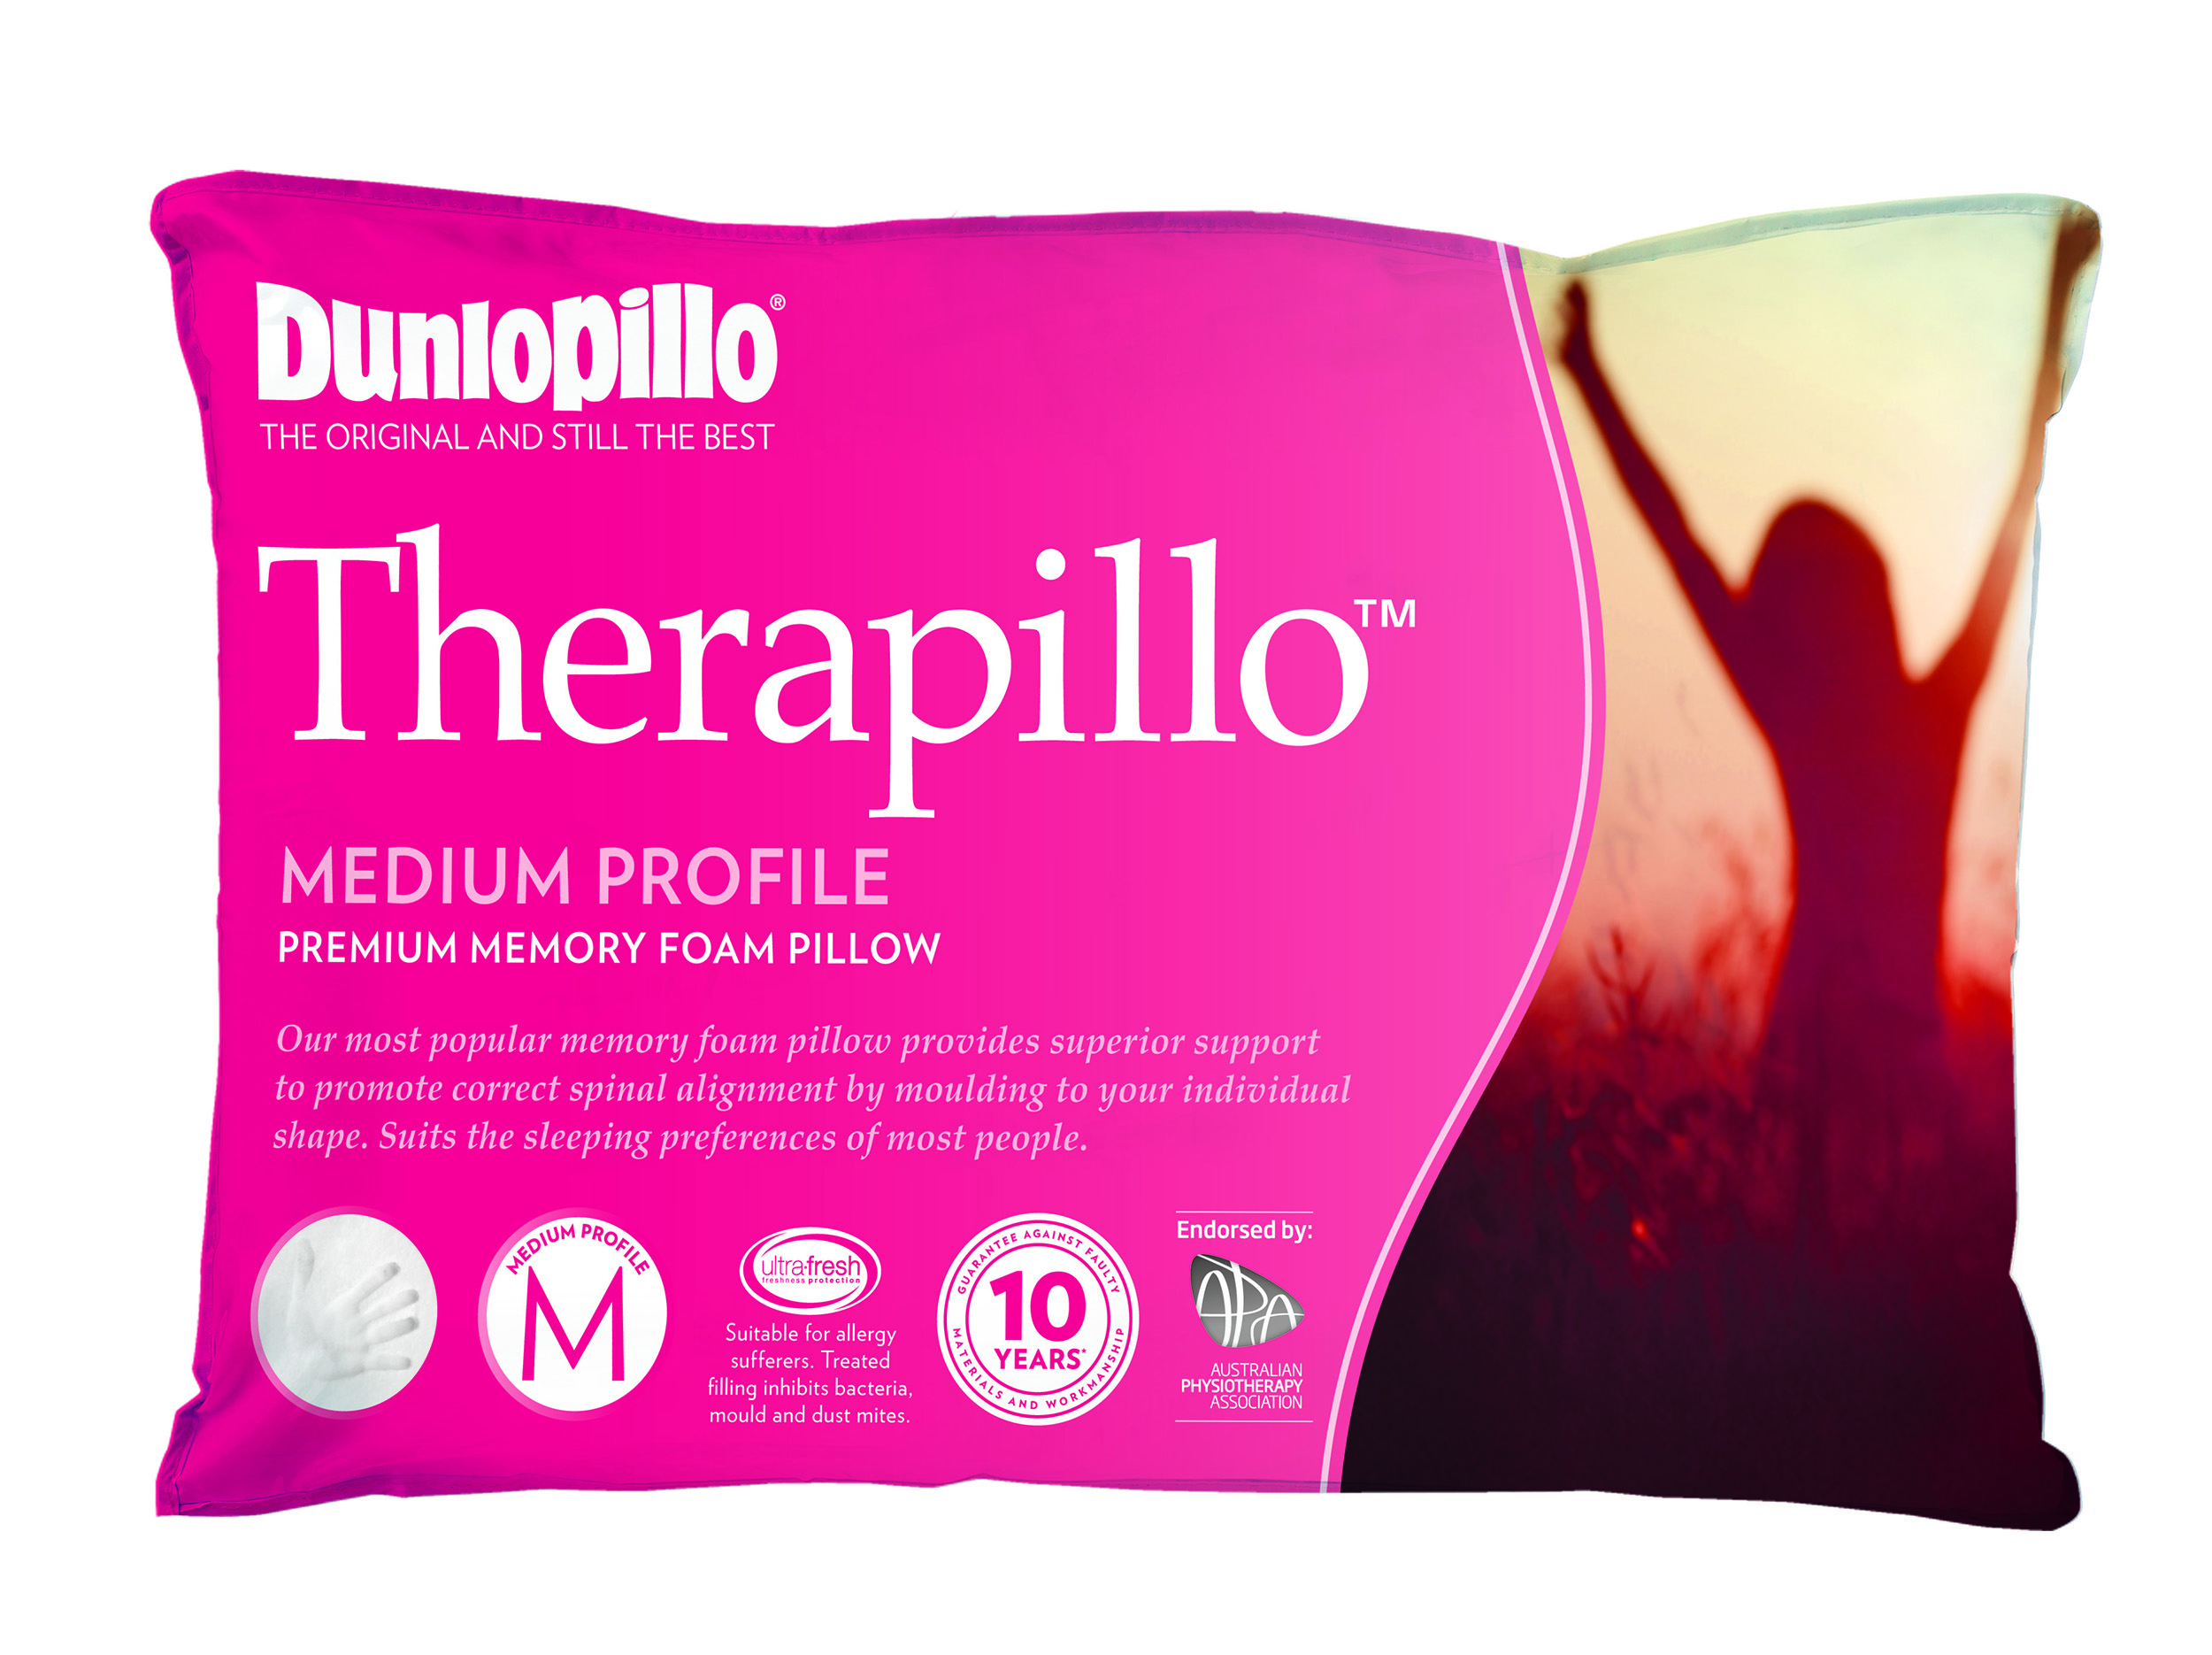 Therapillo Premium Memory Foam Medium Profile Pillow